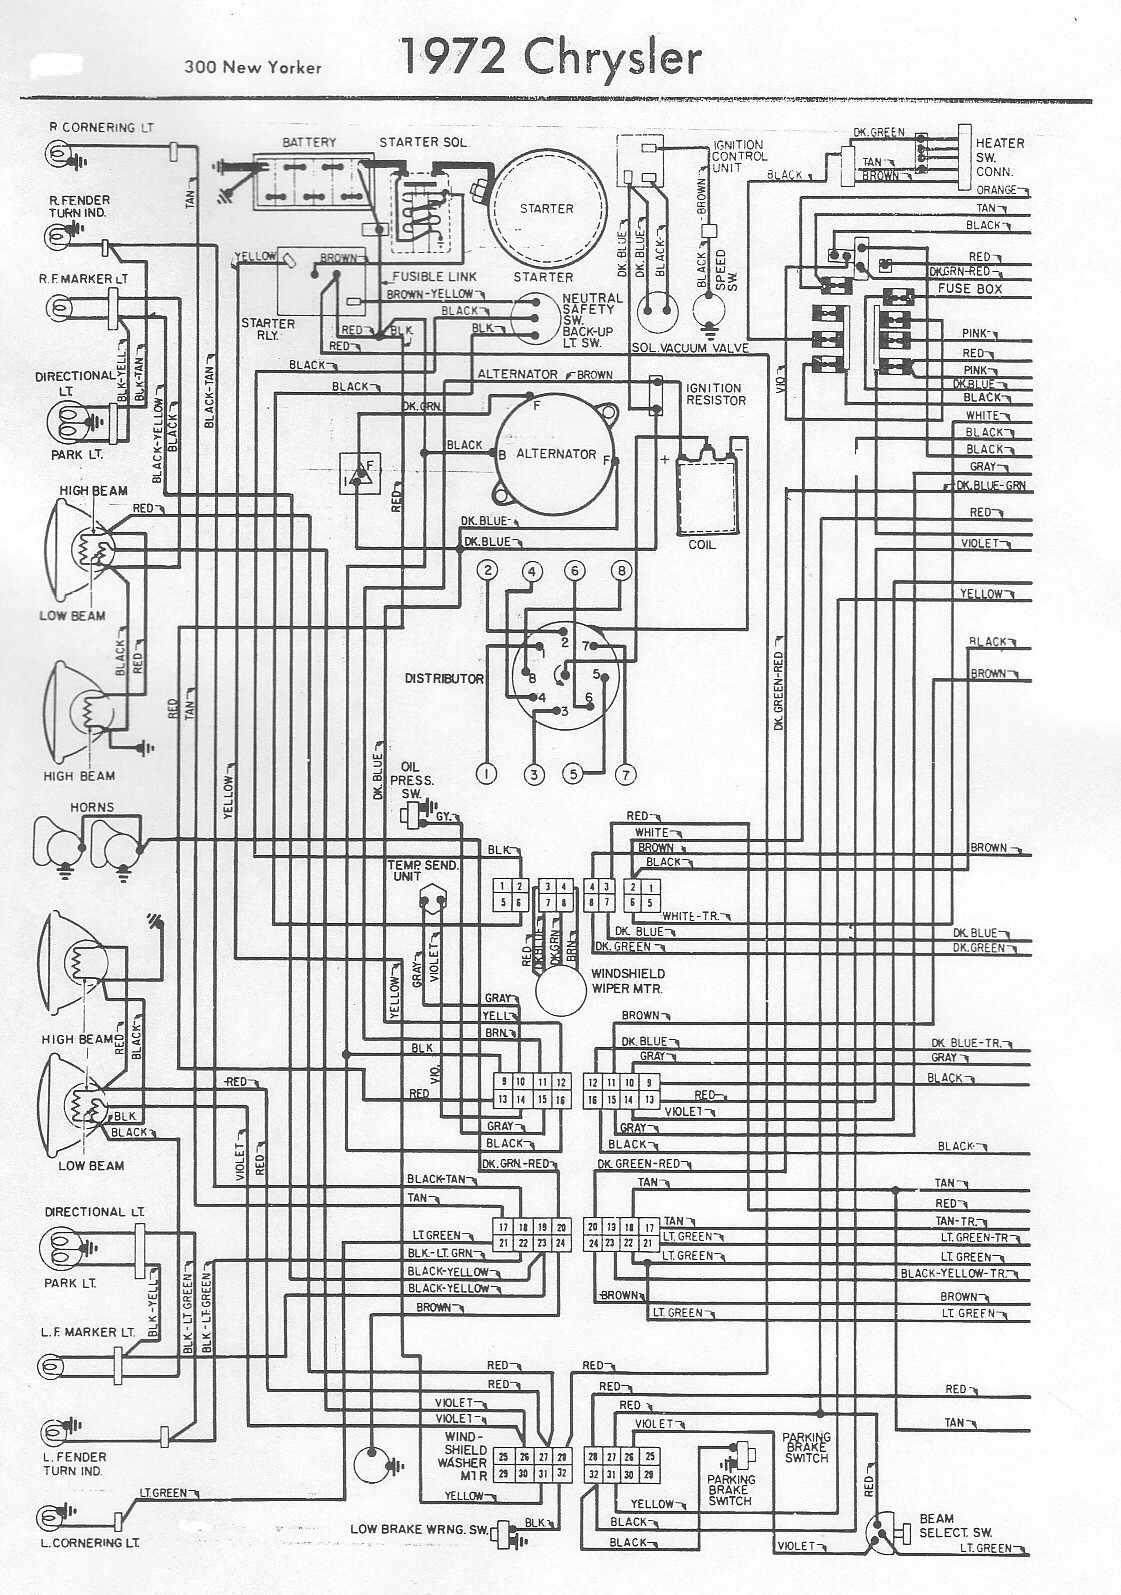 Chrysler 300m Wiring Diagram Archive Of Automotive Alfa Romeo 156 Electrical Dodge Detailed Schematics Rh Technograffito Com 2002 2004